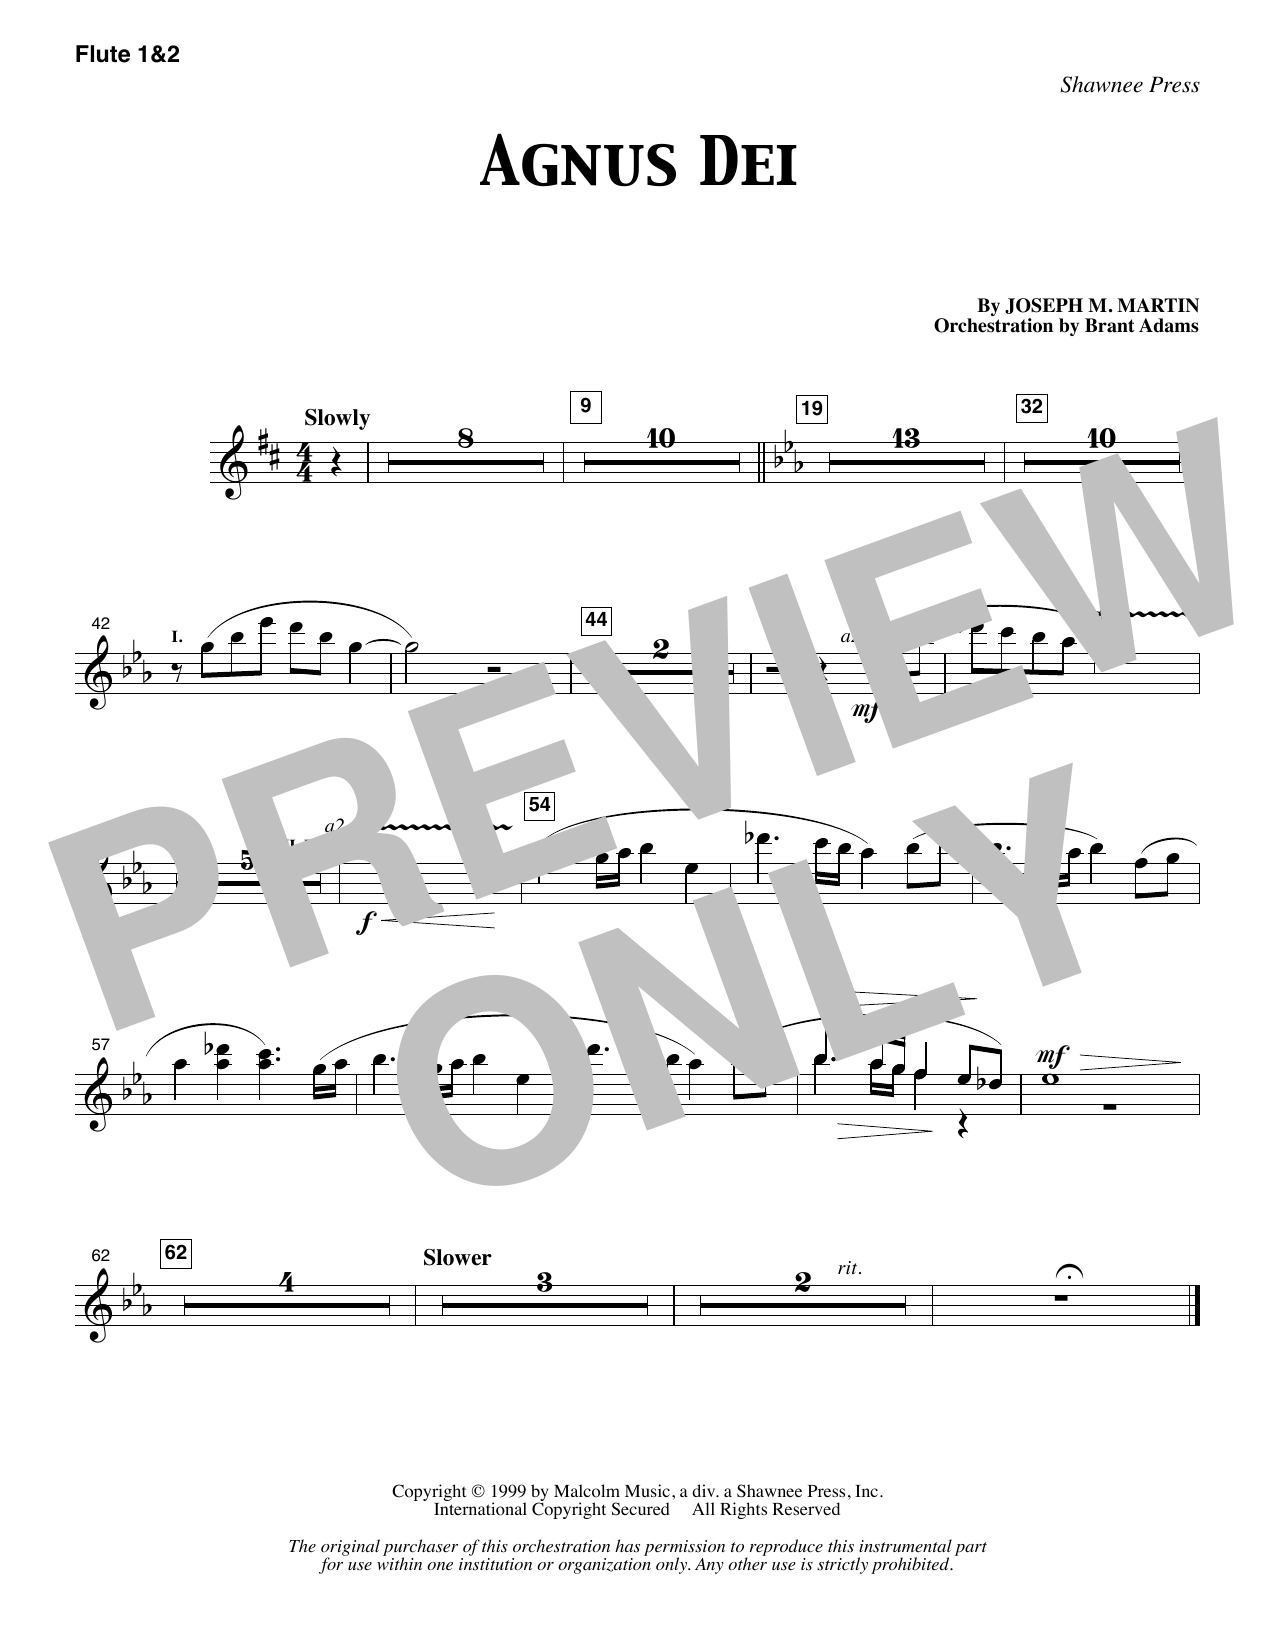 Joseph M. Martin Agnus Dei - Flute 1 & 2 sheet music notes and chords. Download Printable PDF.